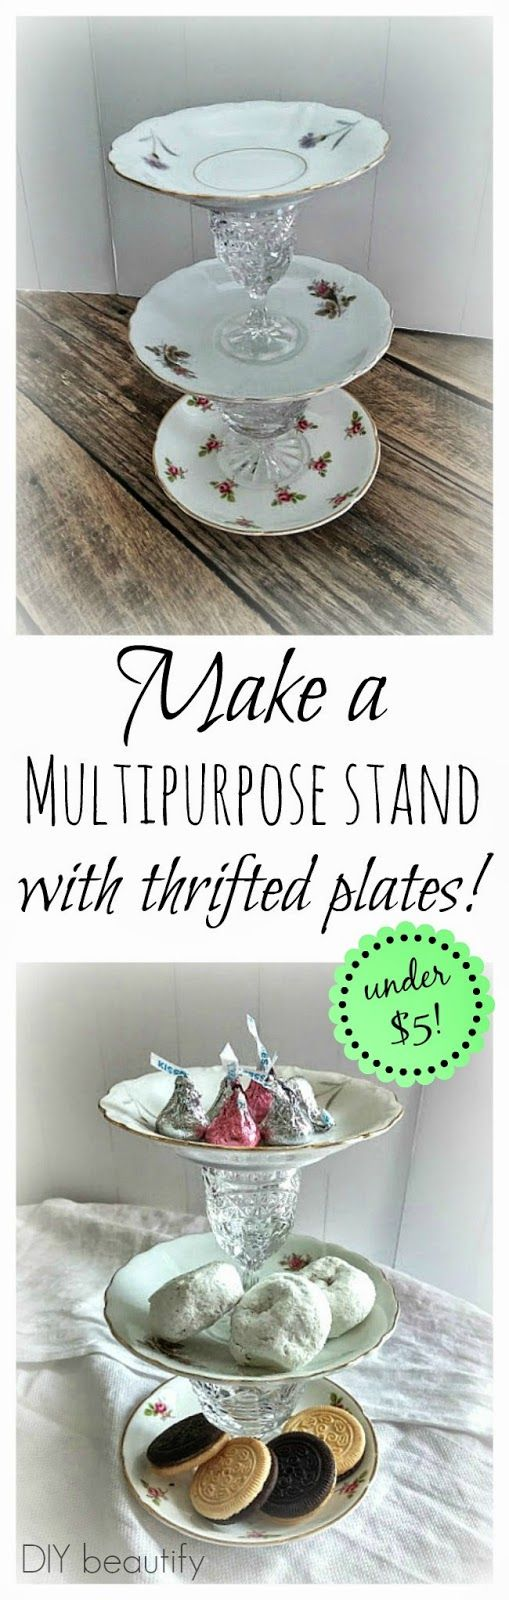 How to Make Tiered Plate Stands for Under $5 www.diybeautify.com